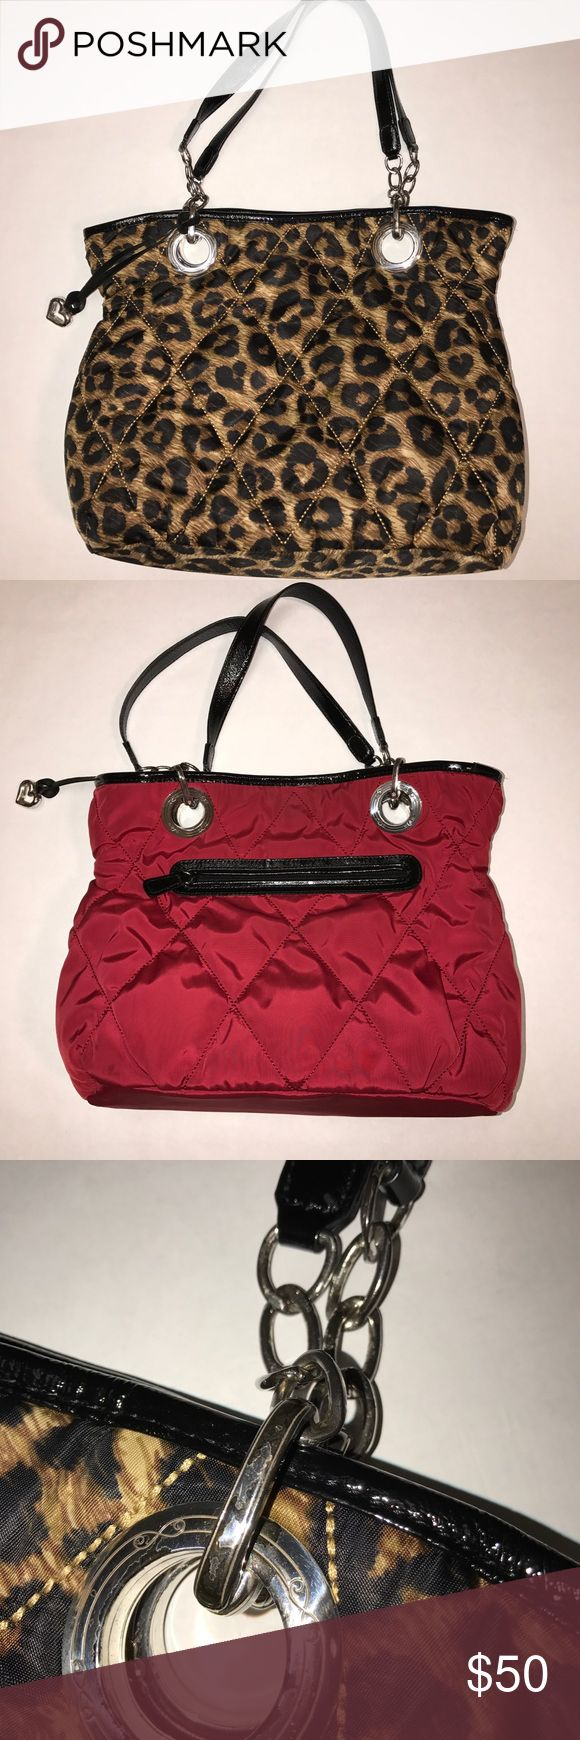 Brighton Animal Print & Red Reversible Tote Brighton Animal Print & Red Quilted Reversible Handbag. Quilted Fabric. A few stains on red interior. Zippered Pocket on Red side. The Silver finish is shipping due to the age of the bag. Brighton Bags Shoulder Bags